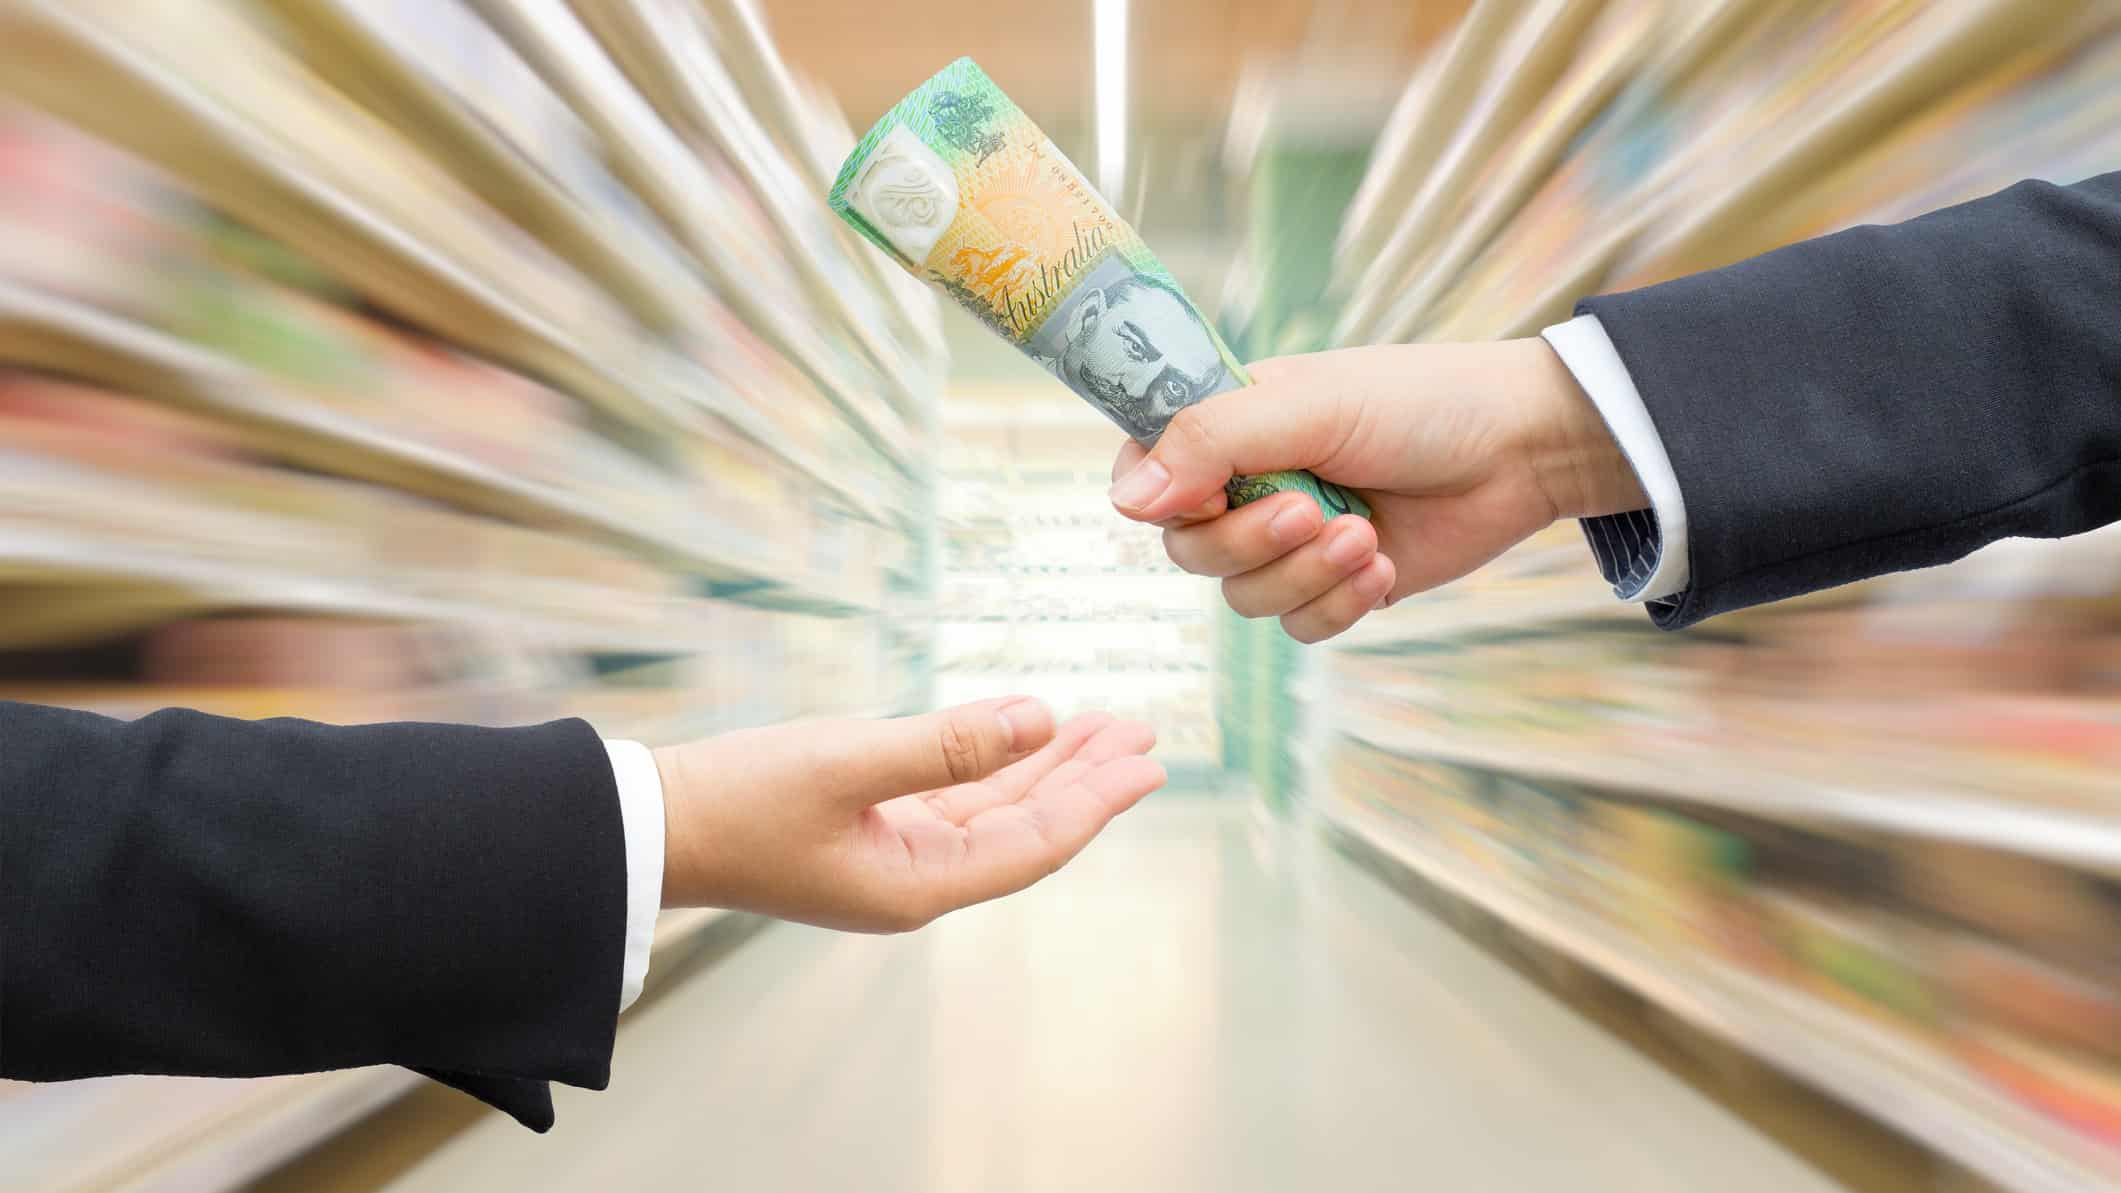 businessman handing $100 note to another in supermarket aisle representing woolworths share price